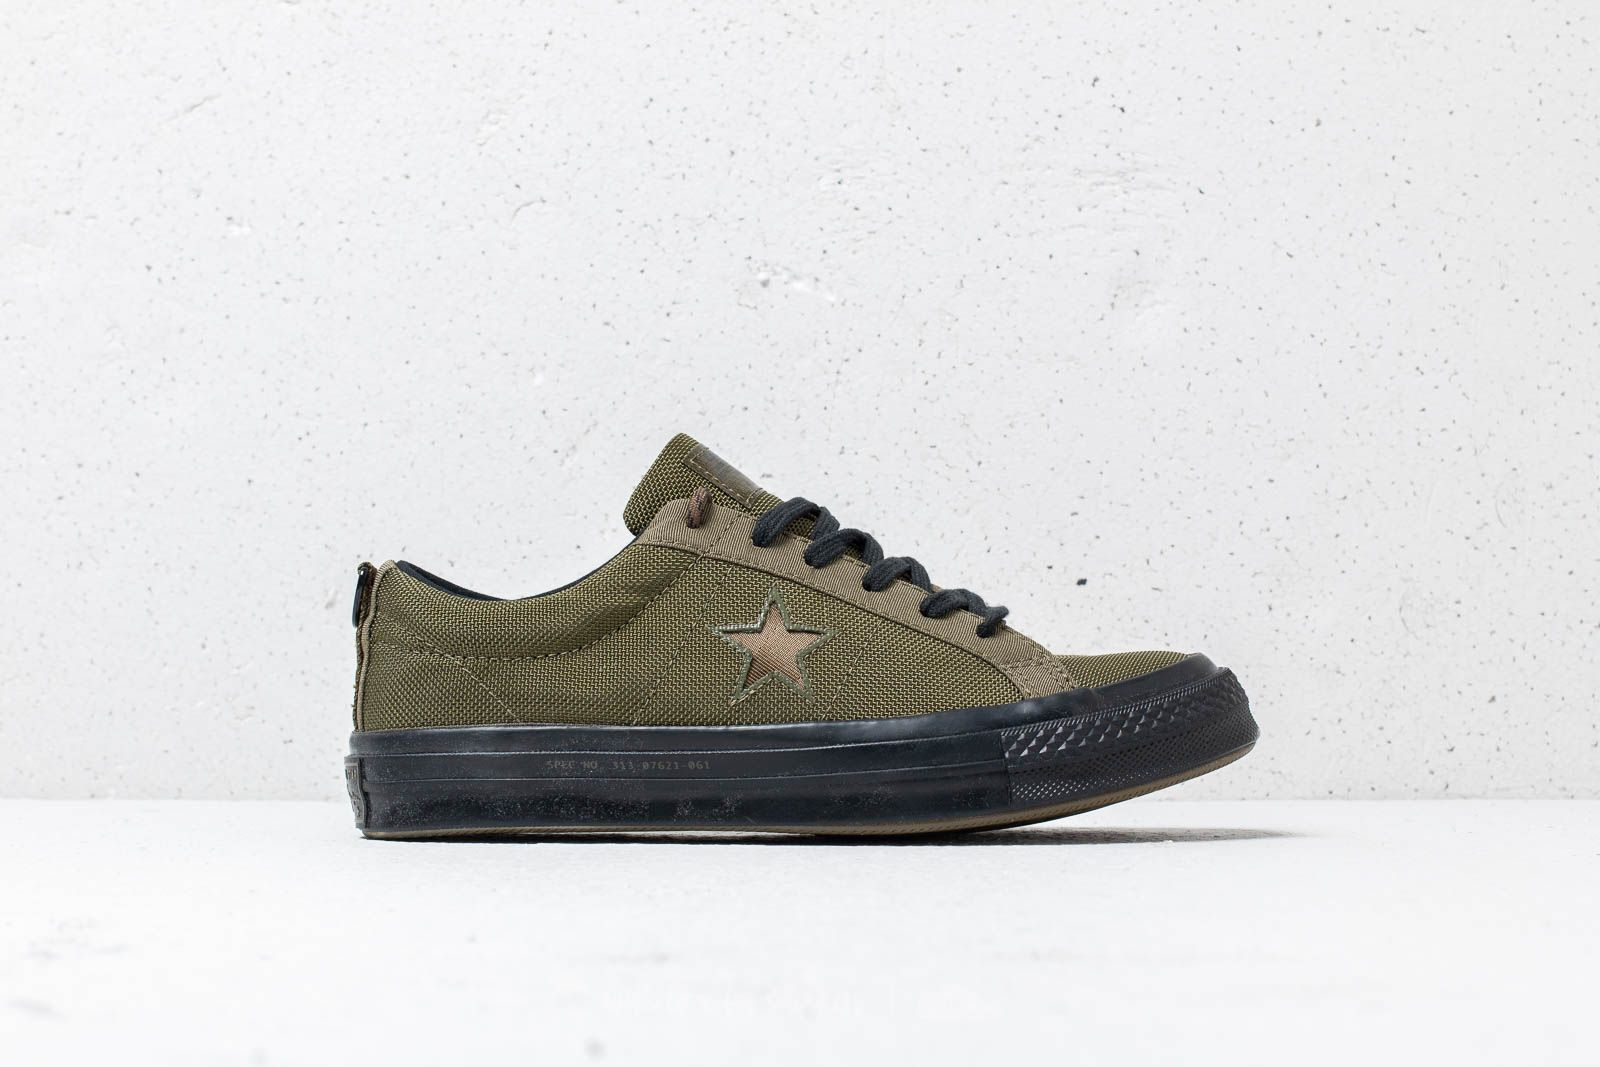 Converse x Carhartt WIP One Star OX Herbal Medium Olive Black | Footshop